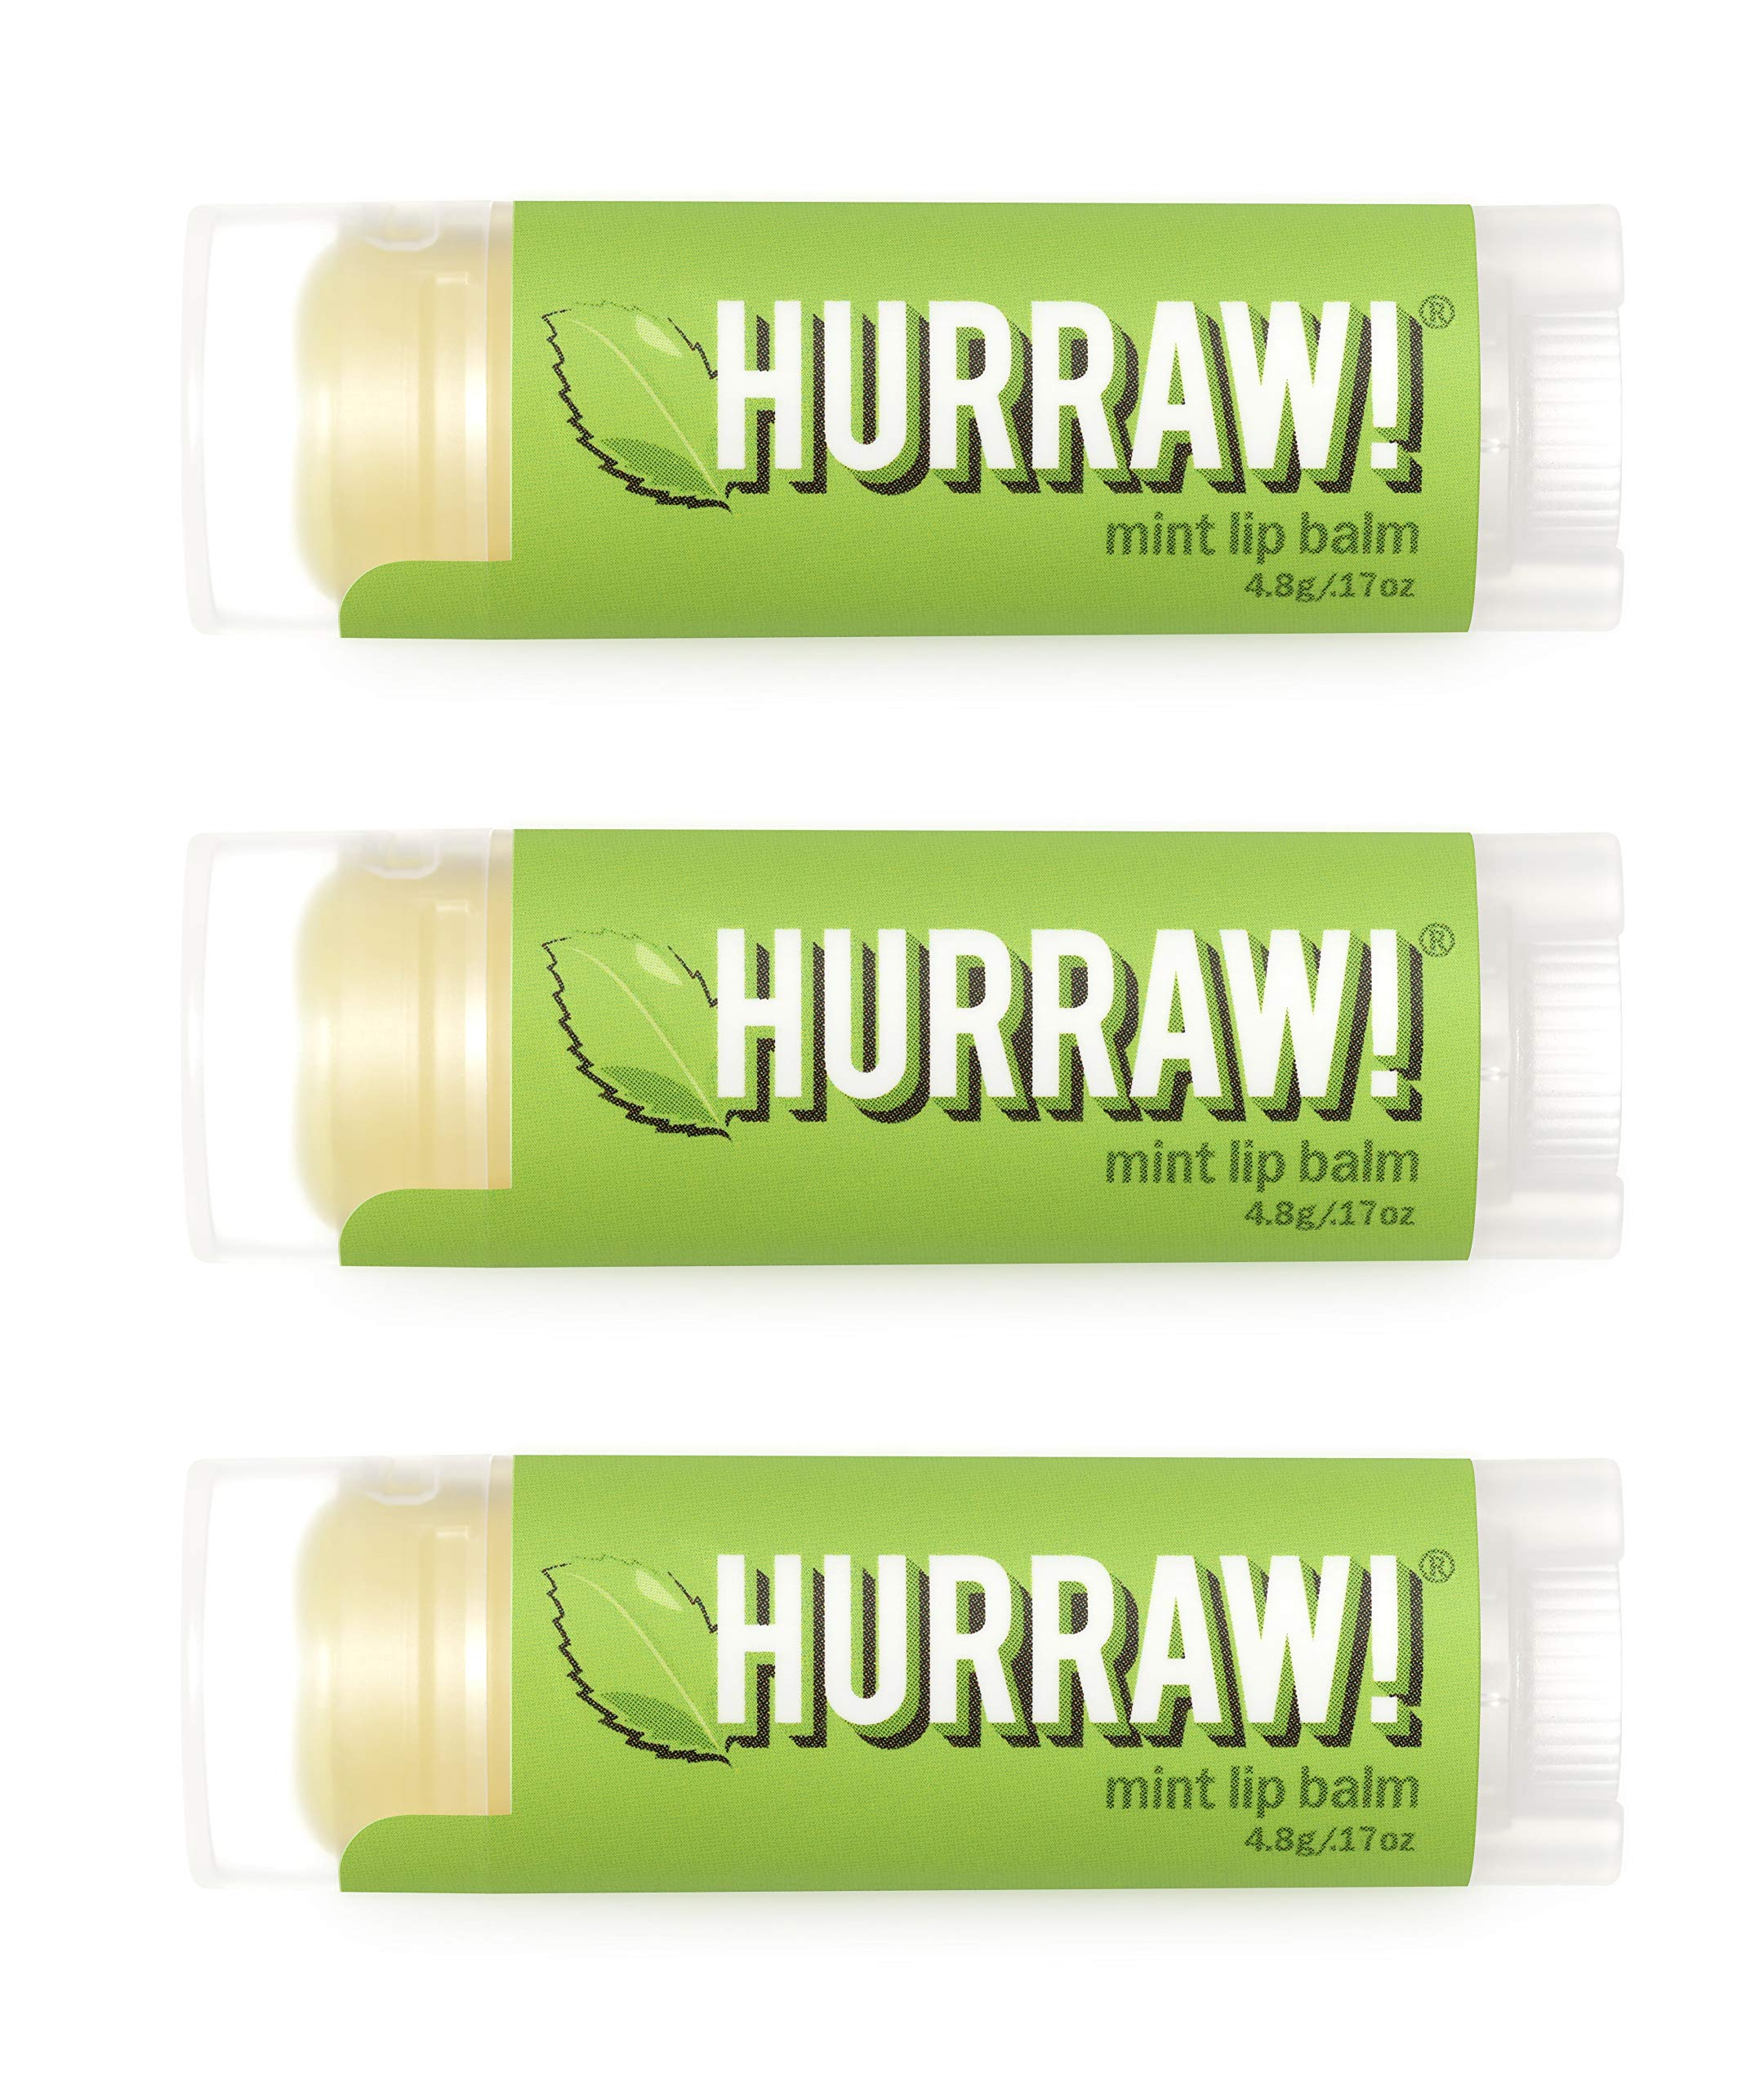 Hurraw Mint Lip Balm, 3 Pack – Organic, Certified Vegan, Cruelty and Gluten Free. Non-GMO, 100% Natural Ingredients. Bee, Shea, Soy and Palm Free. Made in USA